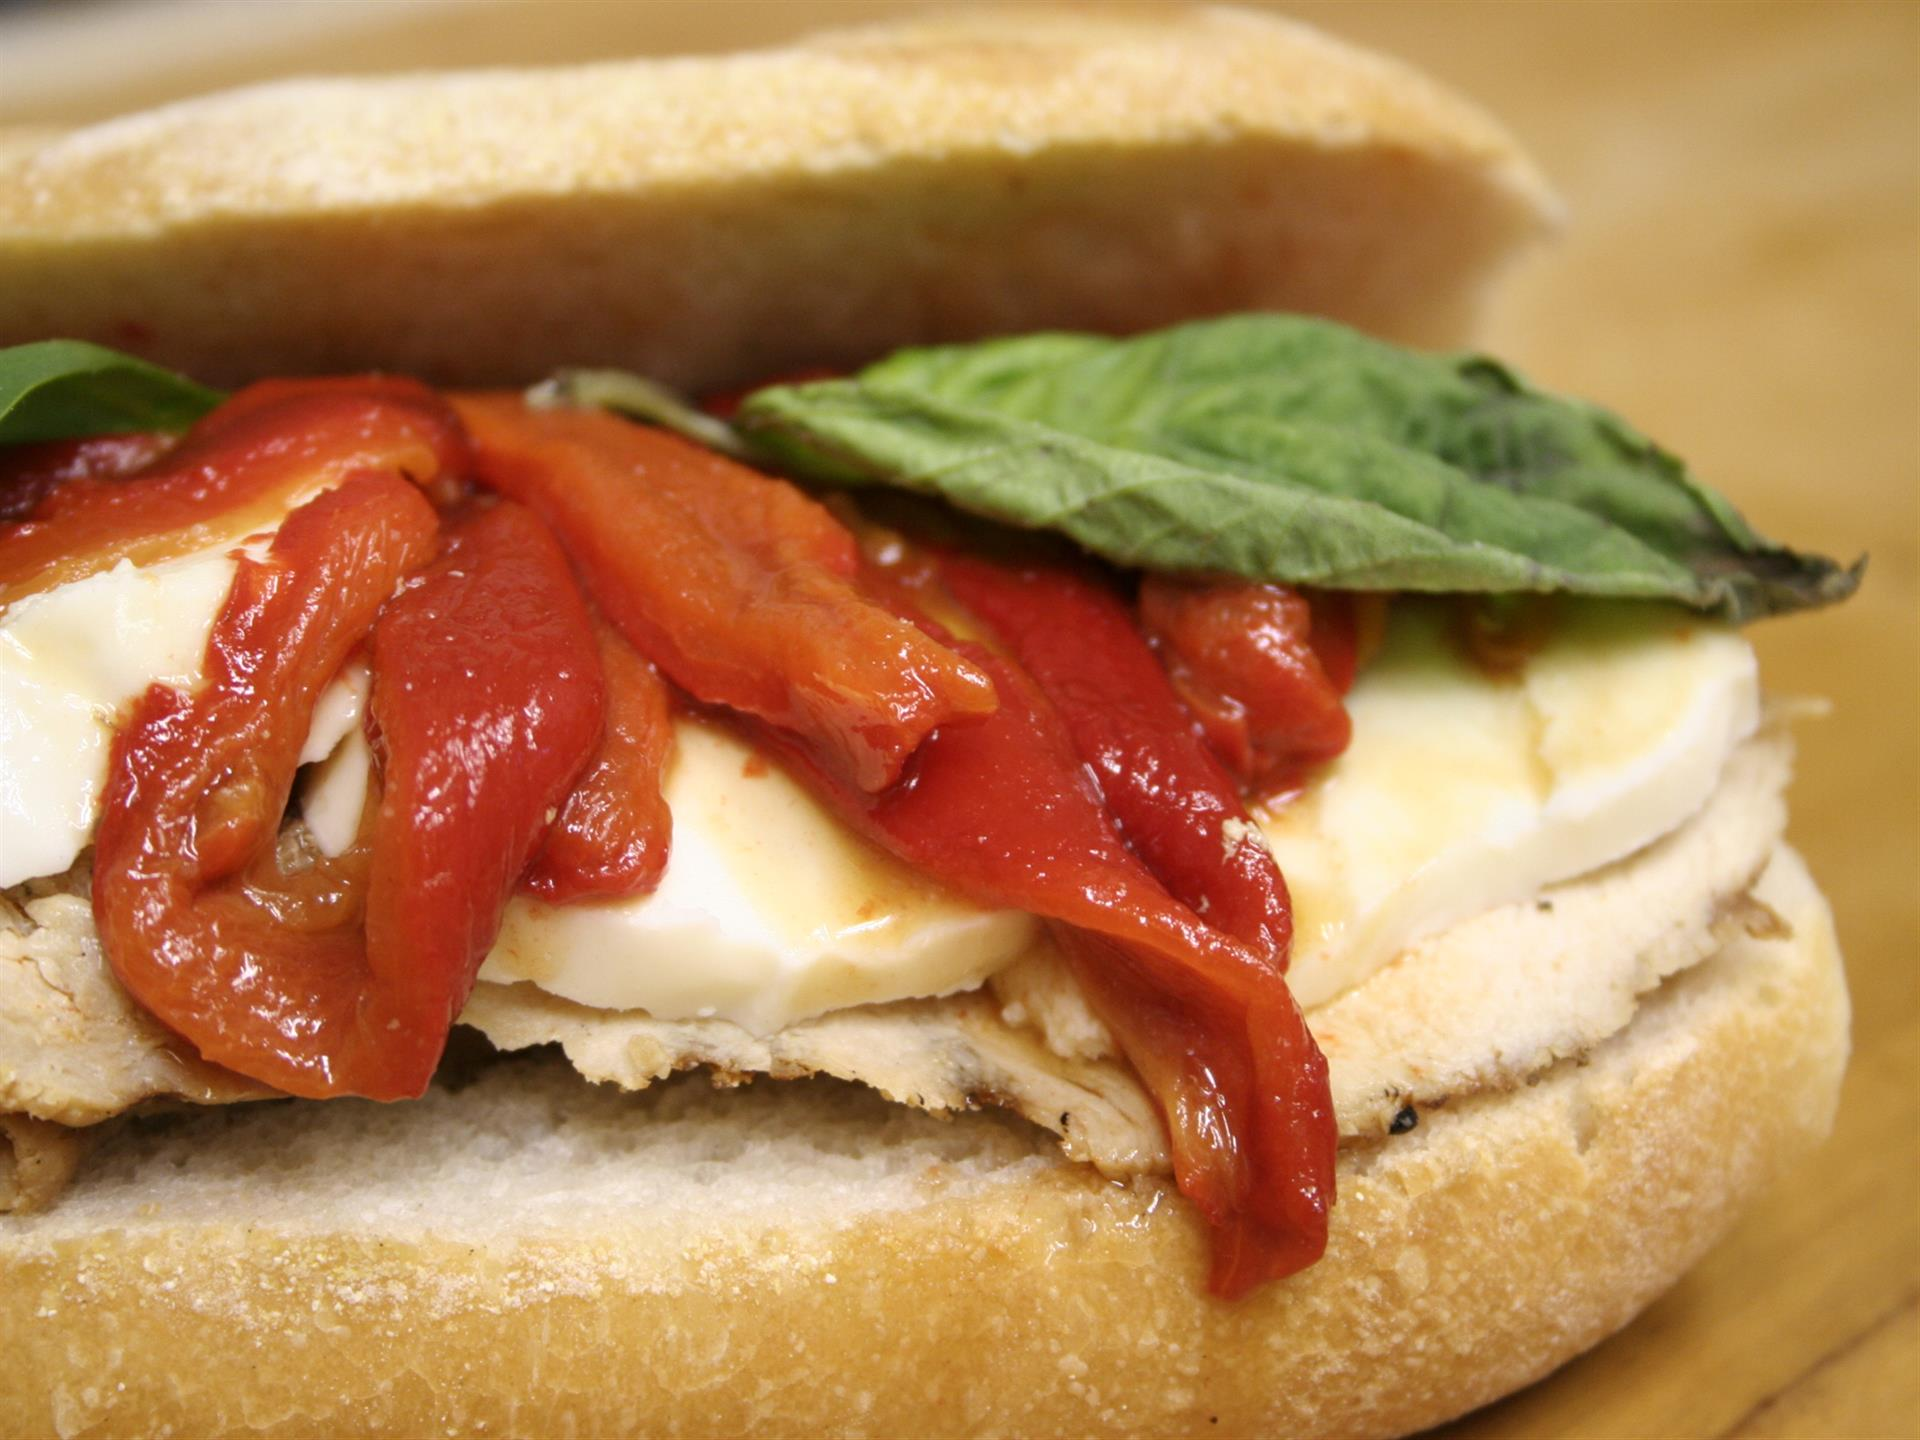 Sandwich with red peppers, chicken, and basil